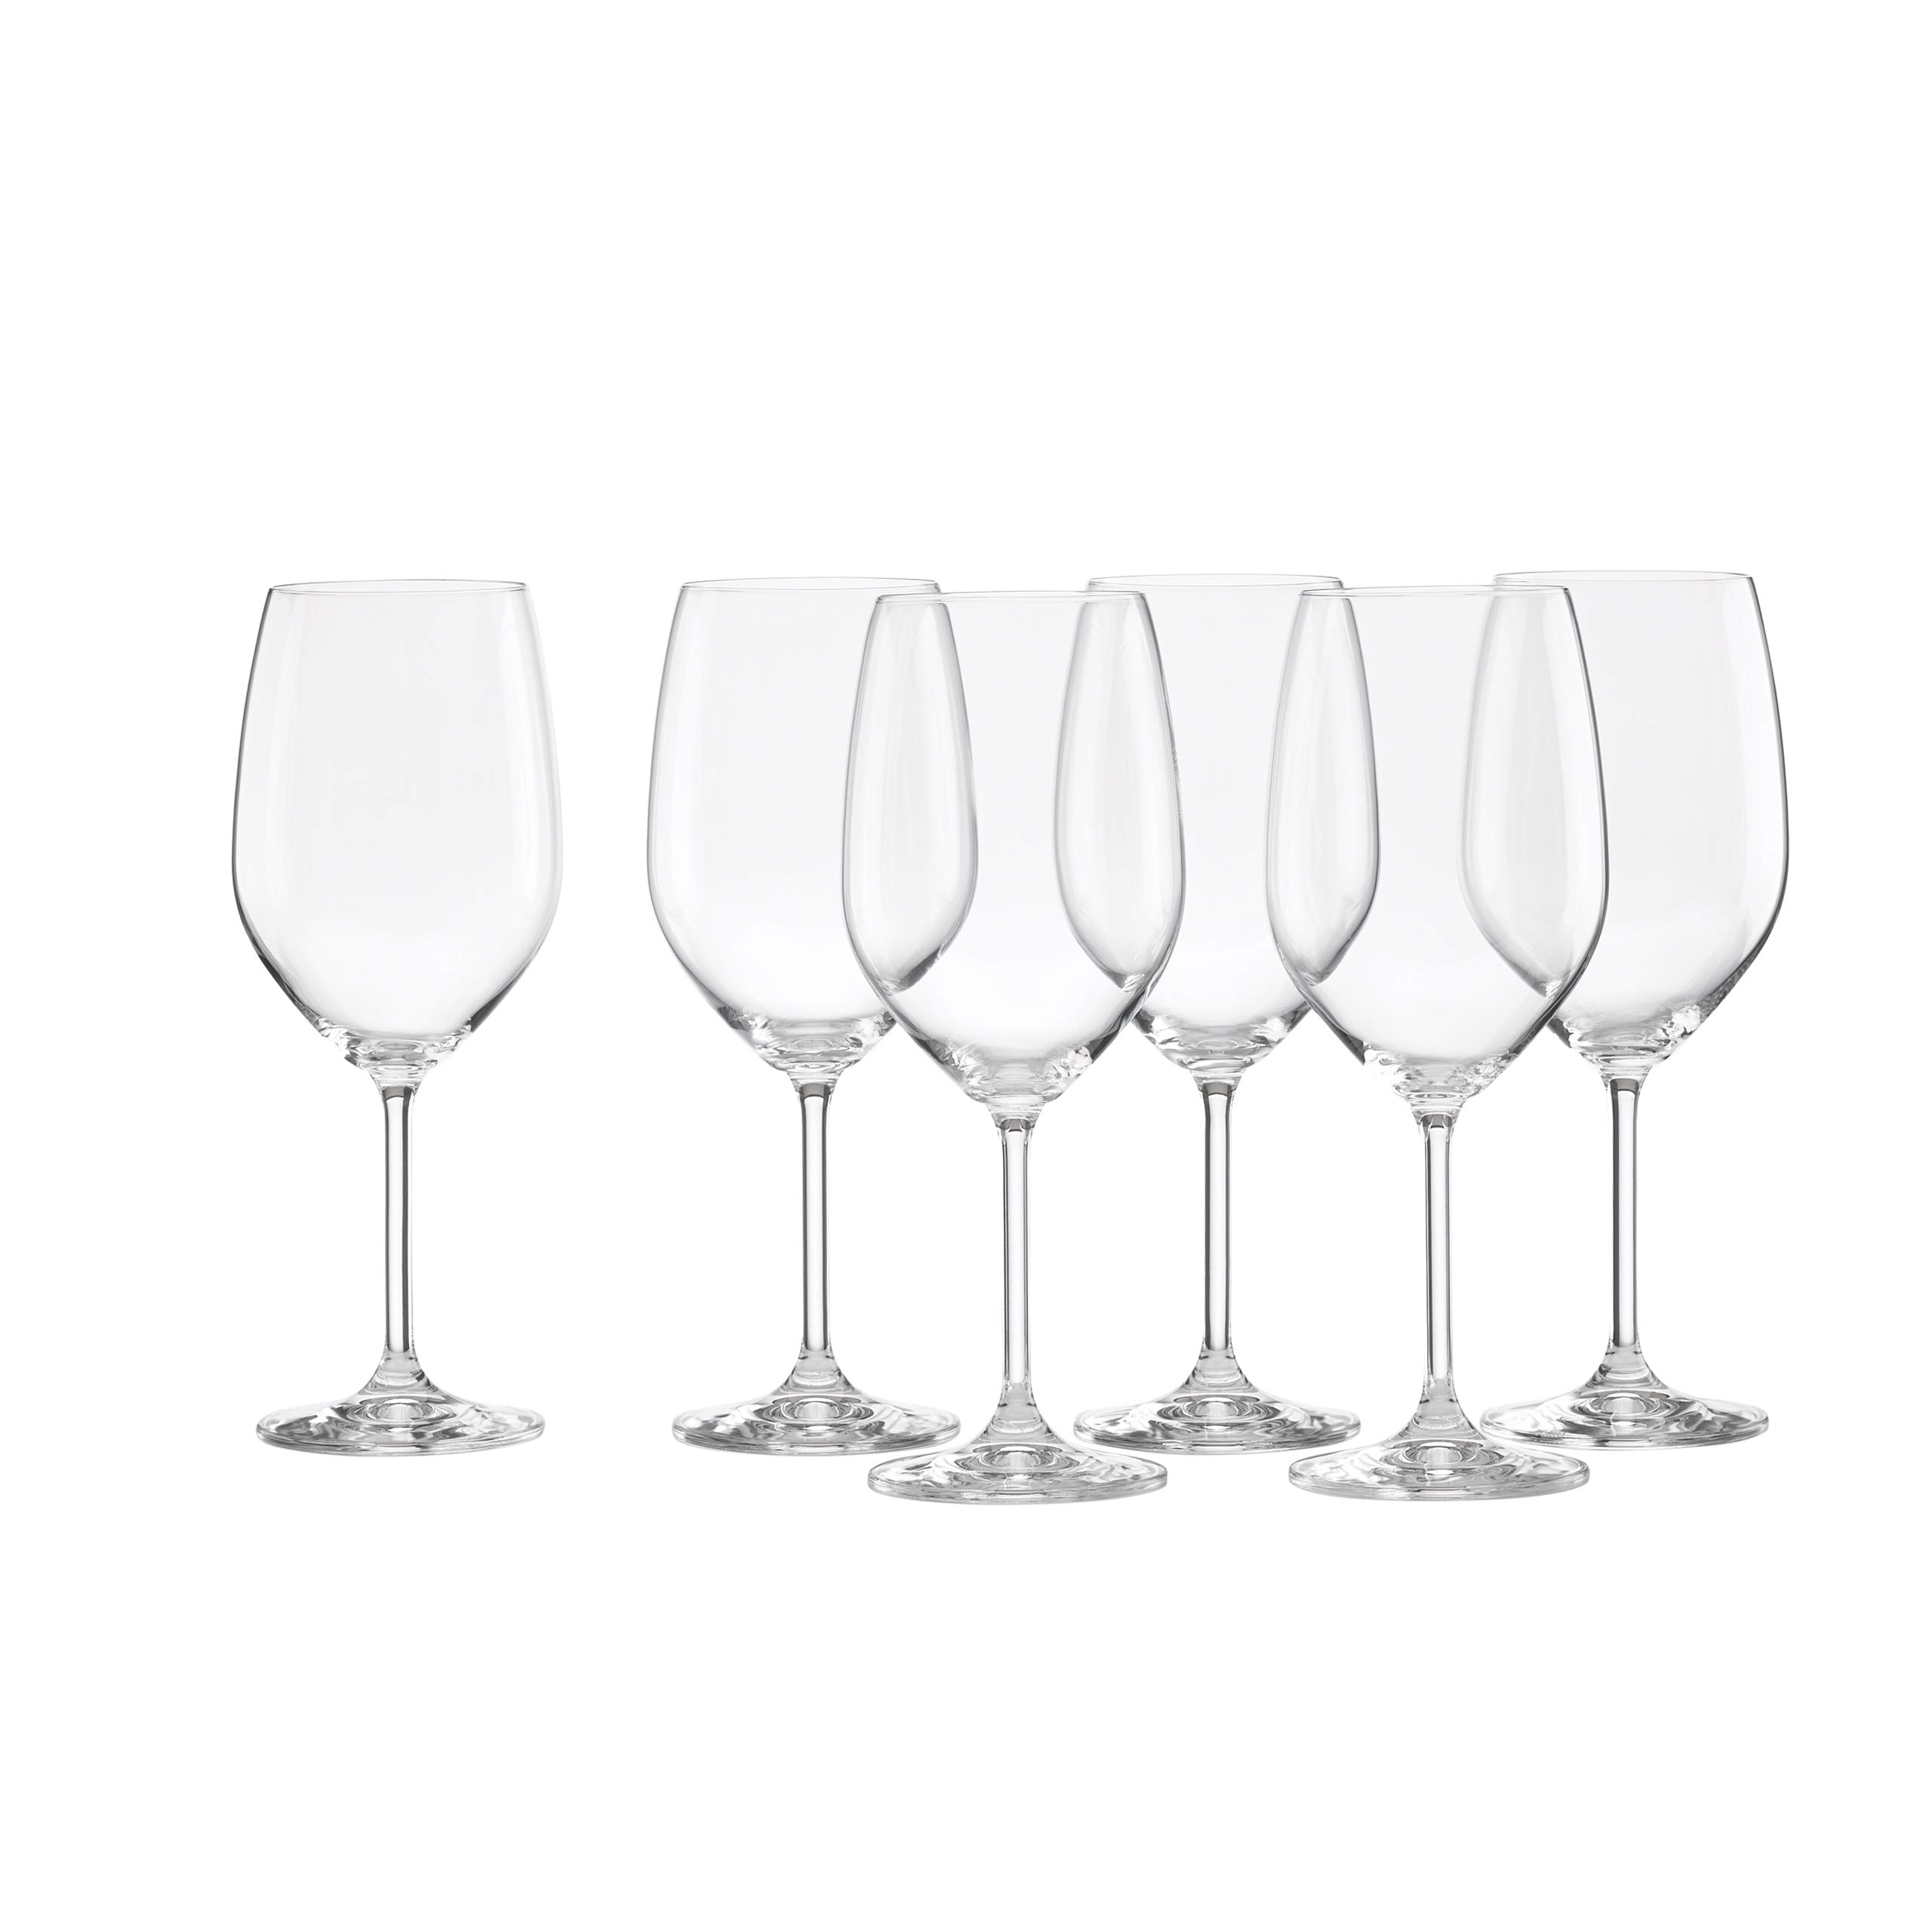 Lenox Tuscany Classics White Wine Glasses, Buy 4, Get 6